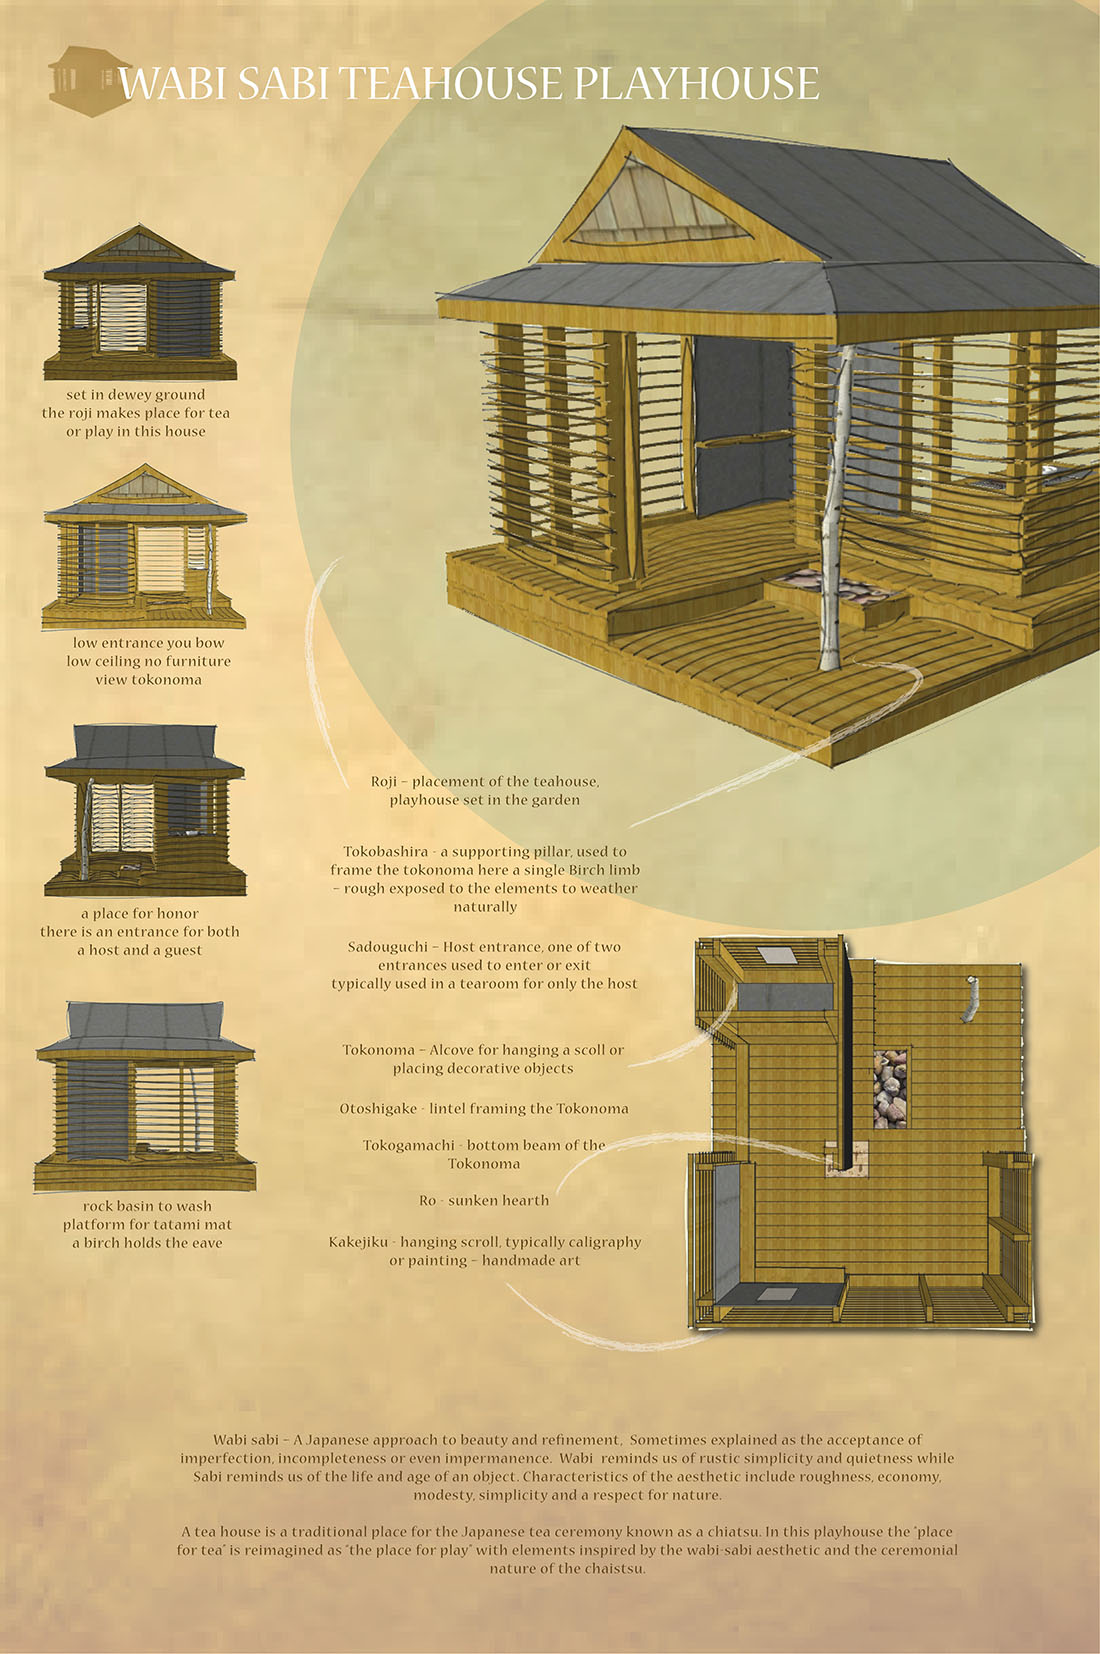 Architecture Drawing Competition 2014 the finalists - 2014 life of an architect playhouse design